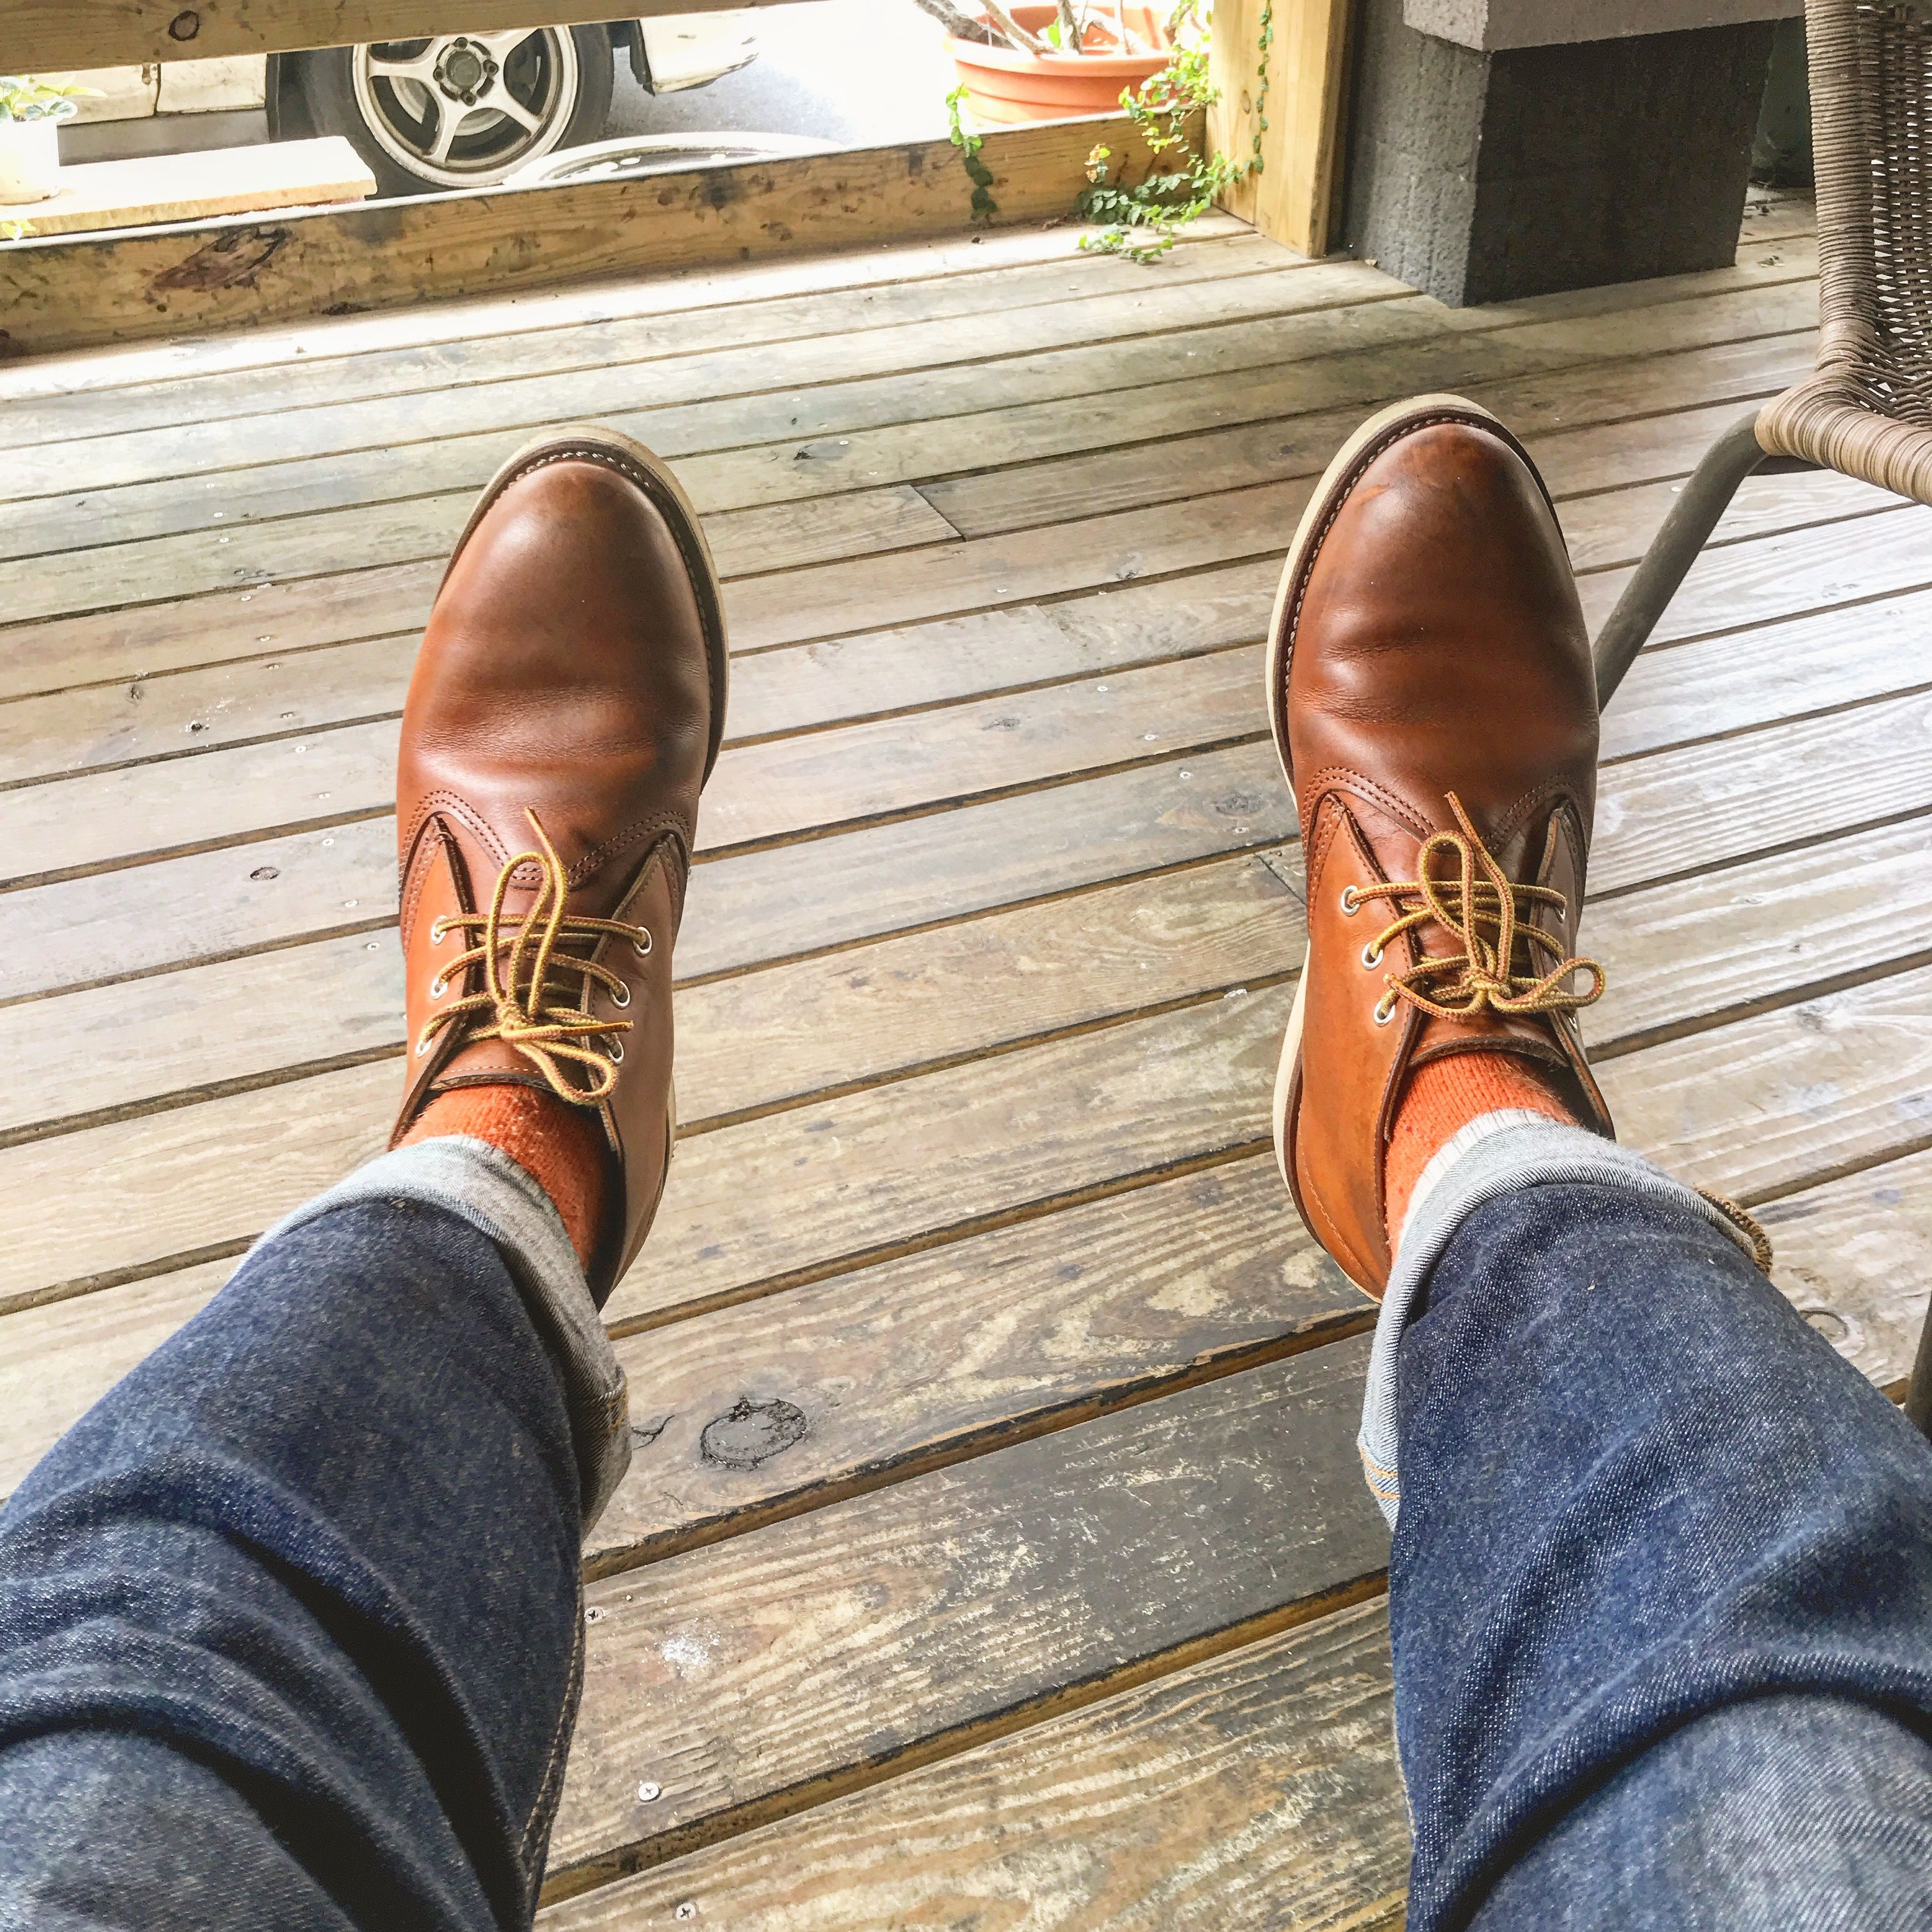 eaecd4c31c6 Red Wing Work Chukkas 3140 Oro-iginal | My boot collection in 2019 ...